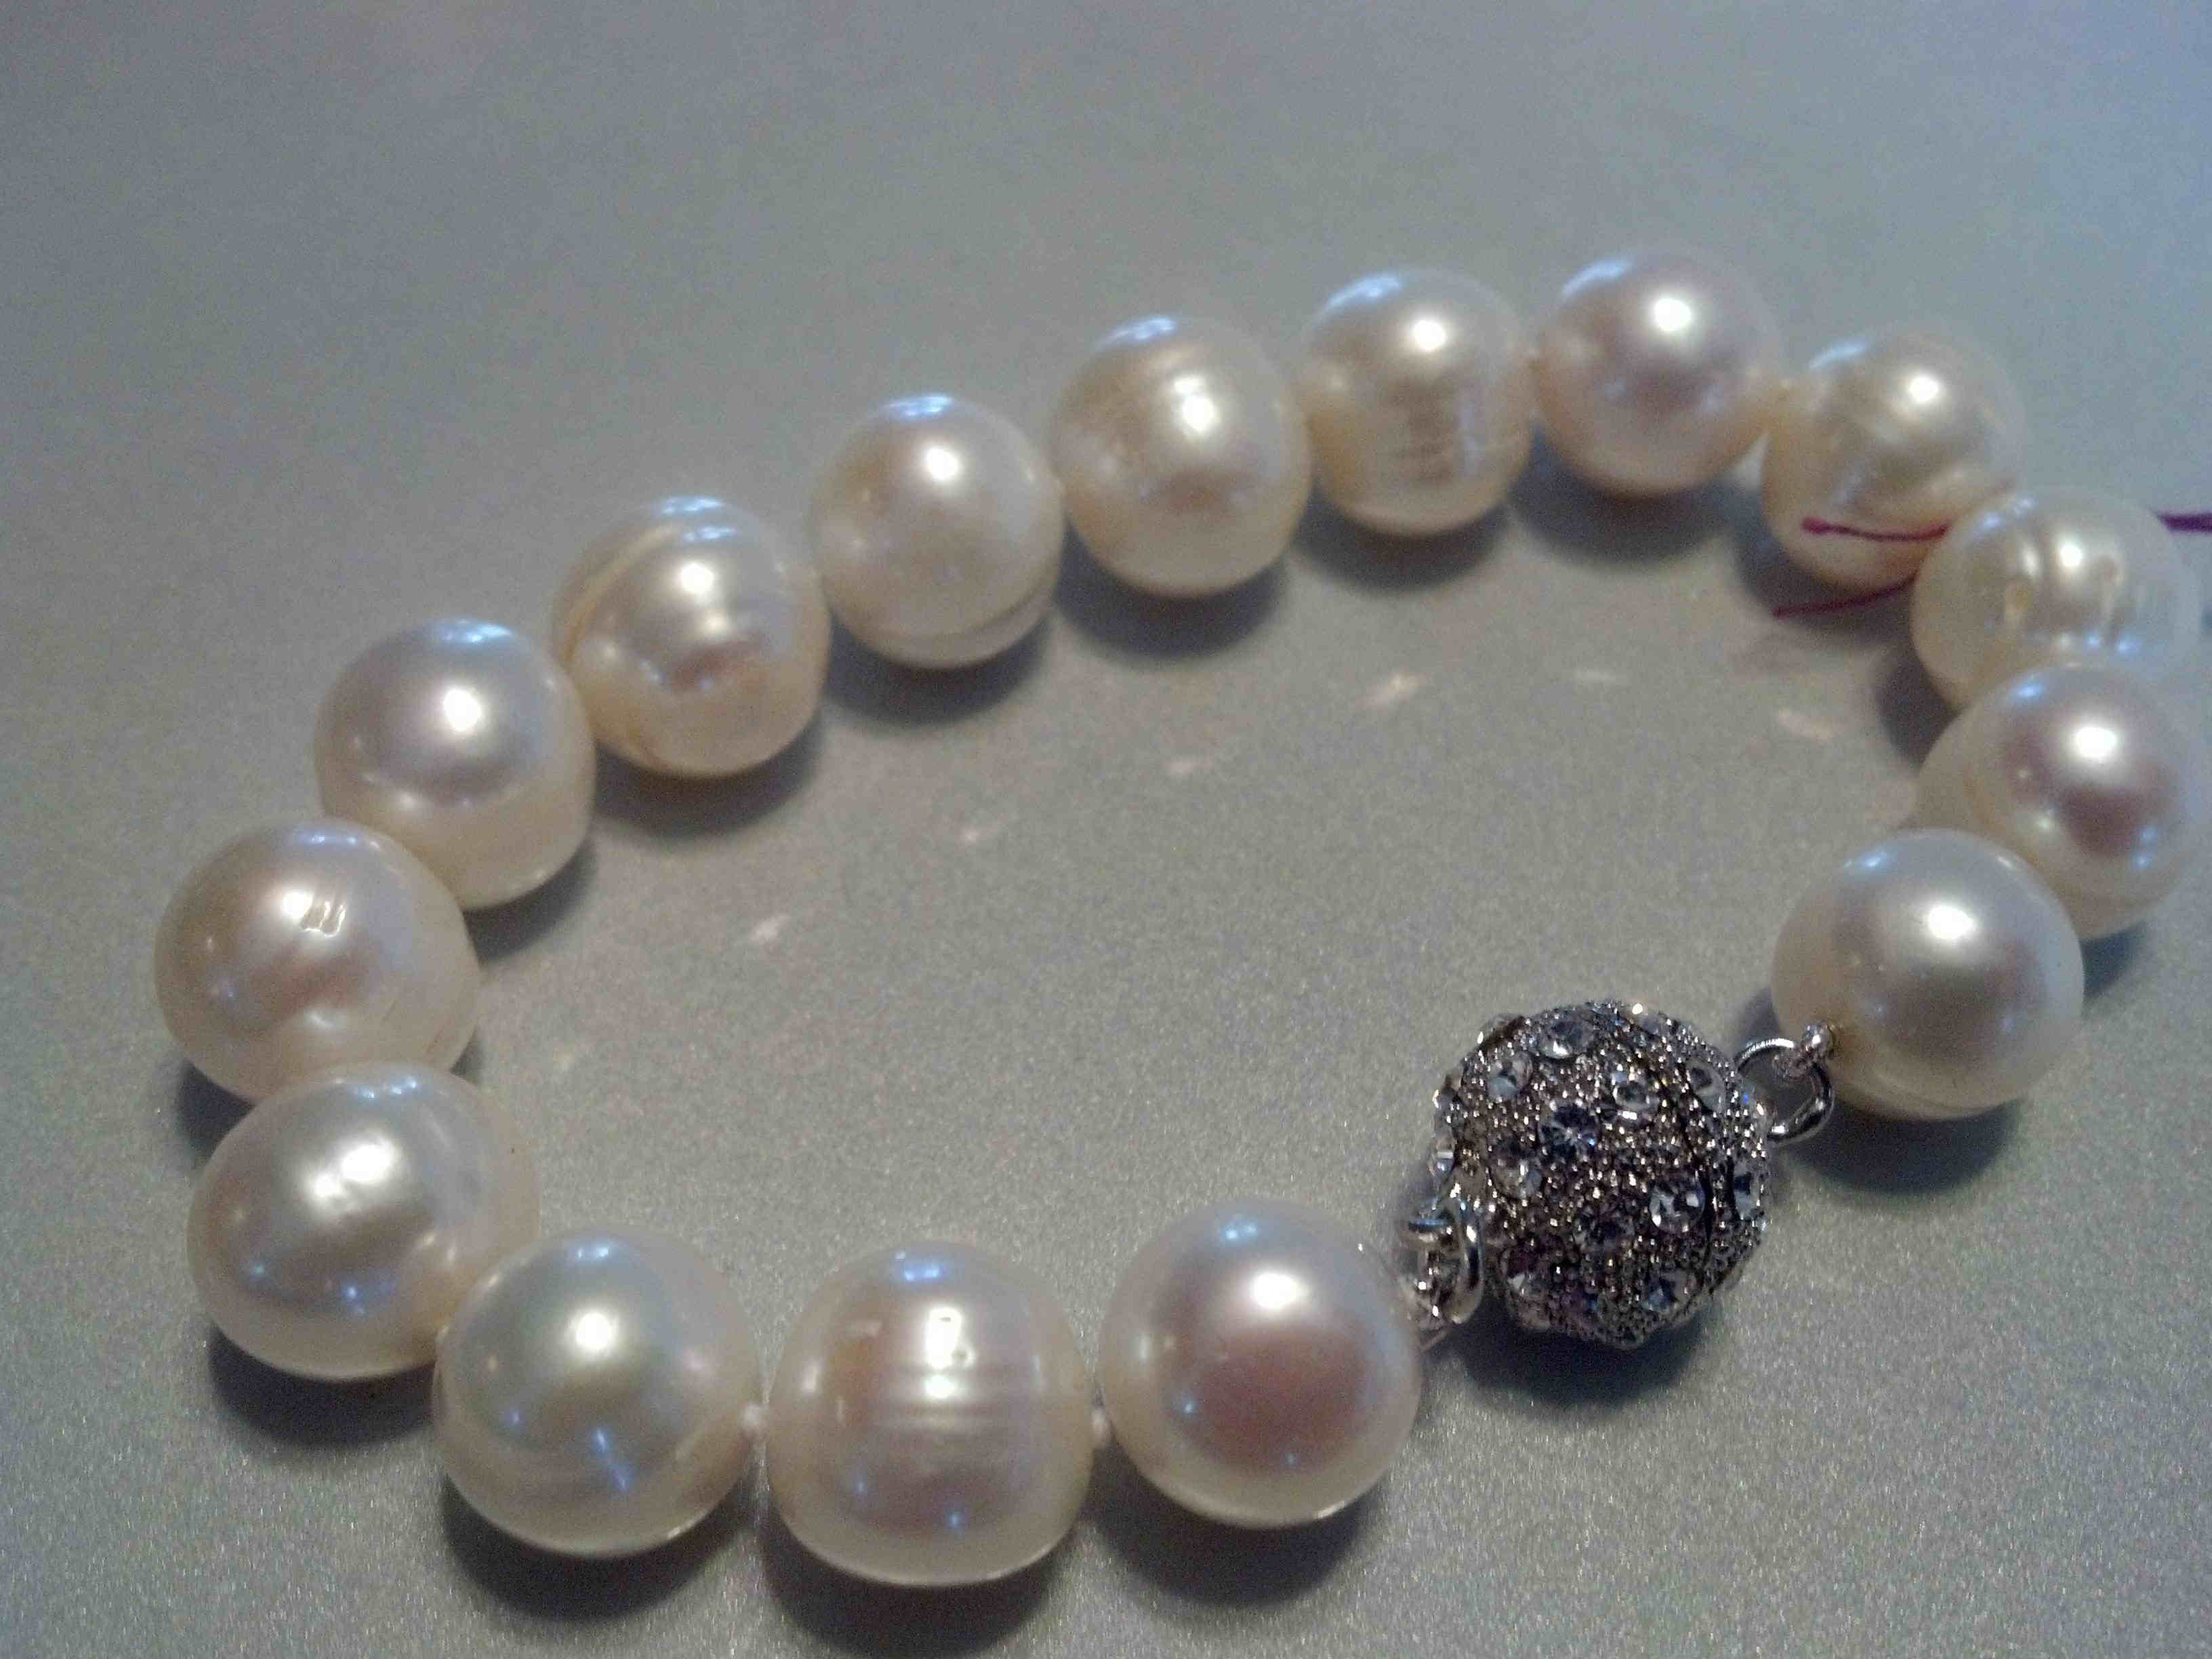 #016 - 11MM SINGLE WHITE BAROQUE BRACELET 7_5 INCH SILVER CRYSTAL CLASP